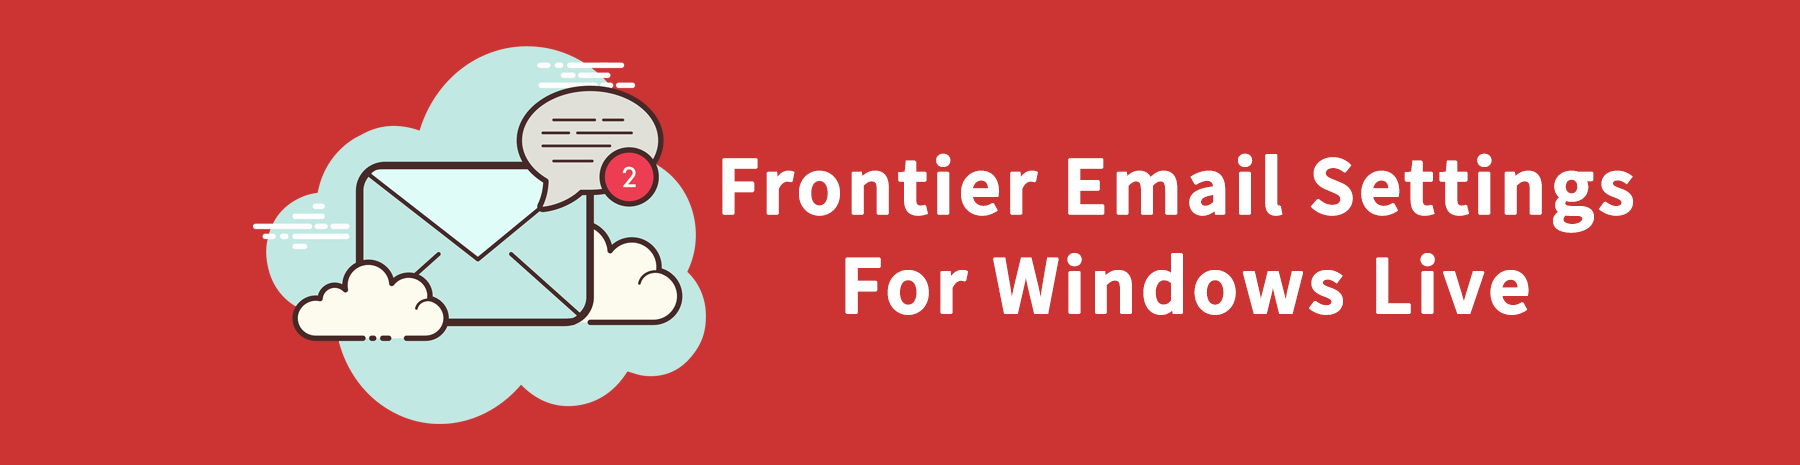 Frontier-Email-Settings-For-Windows-Live